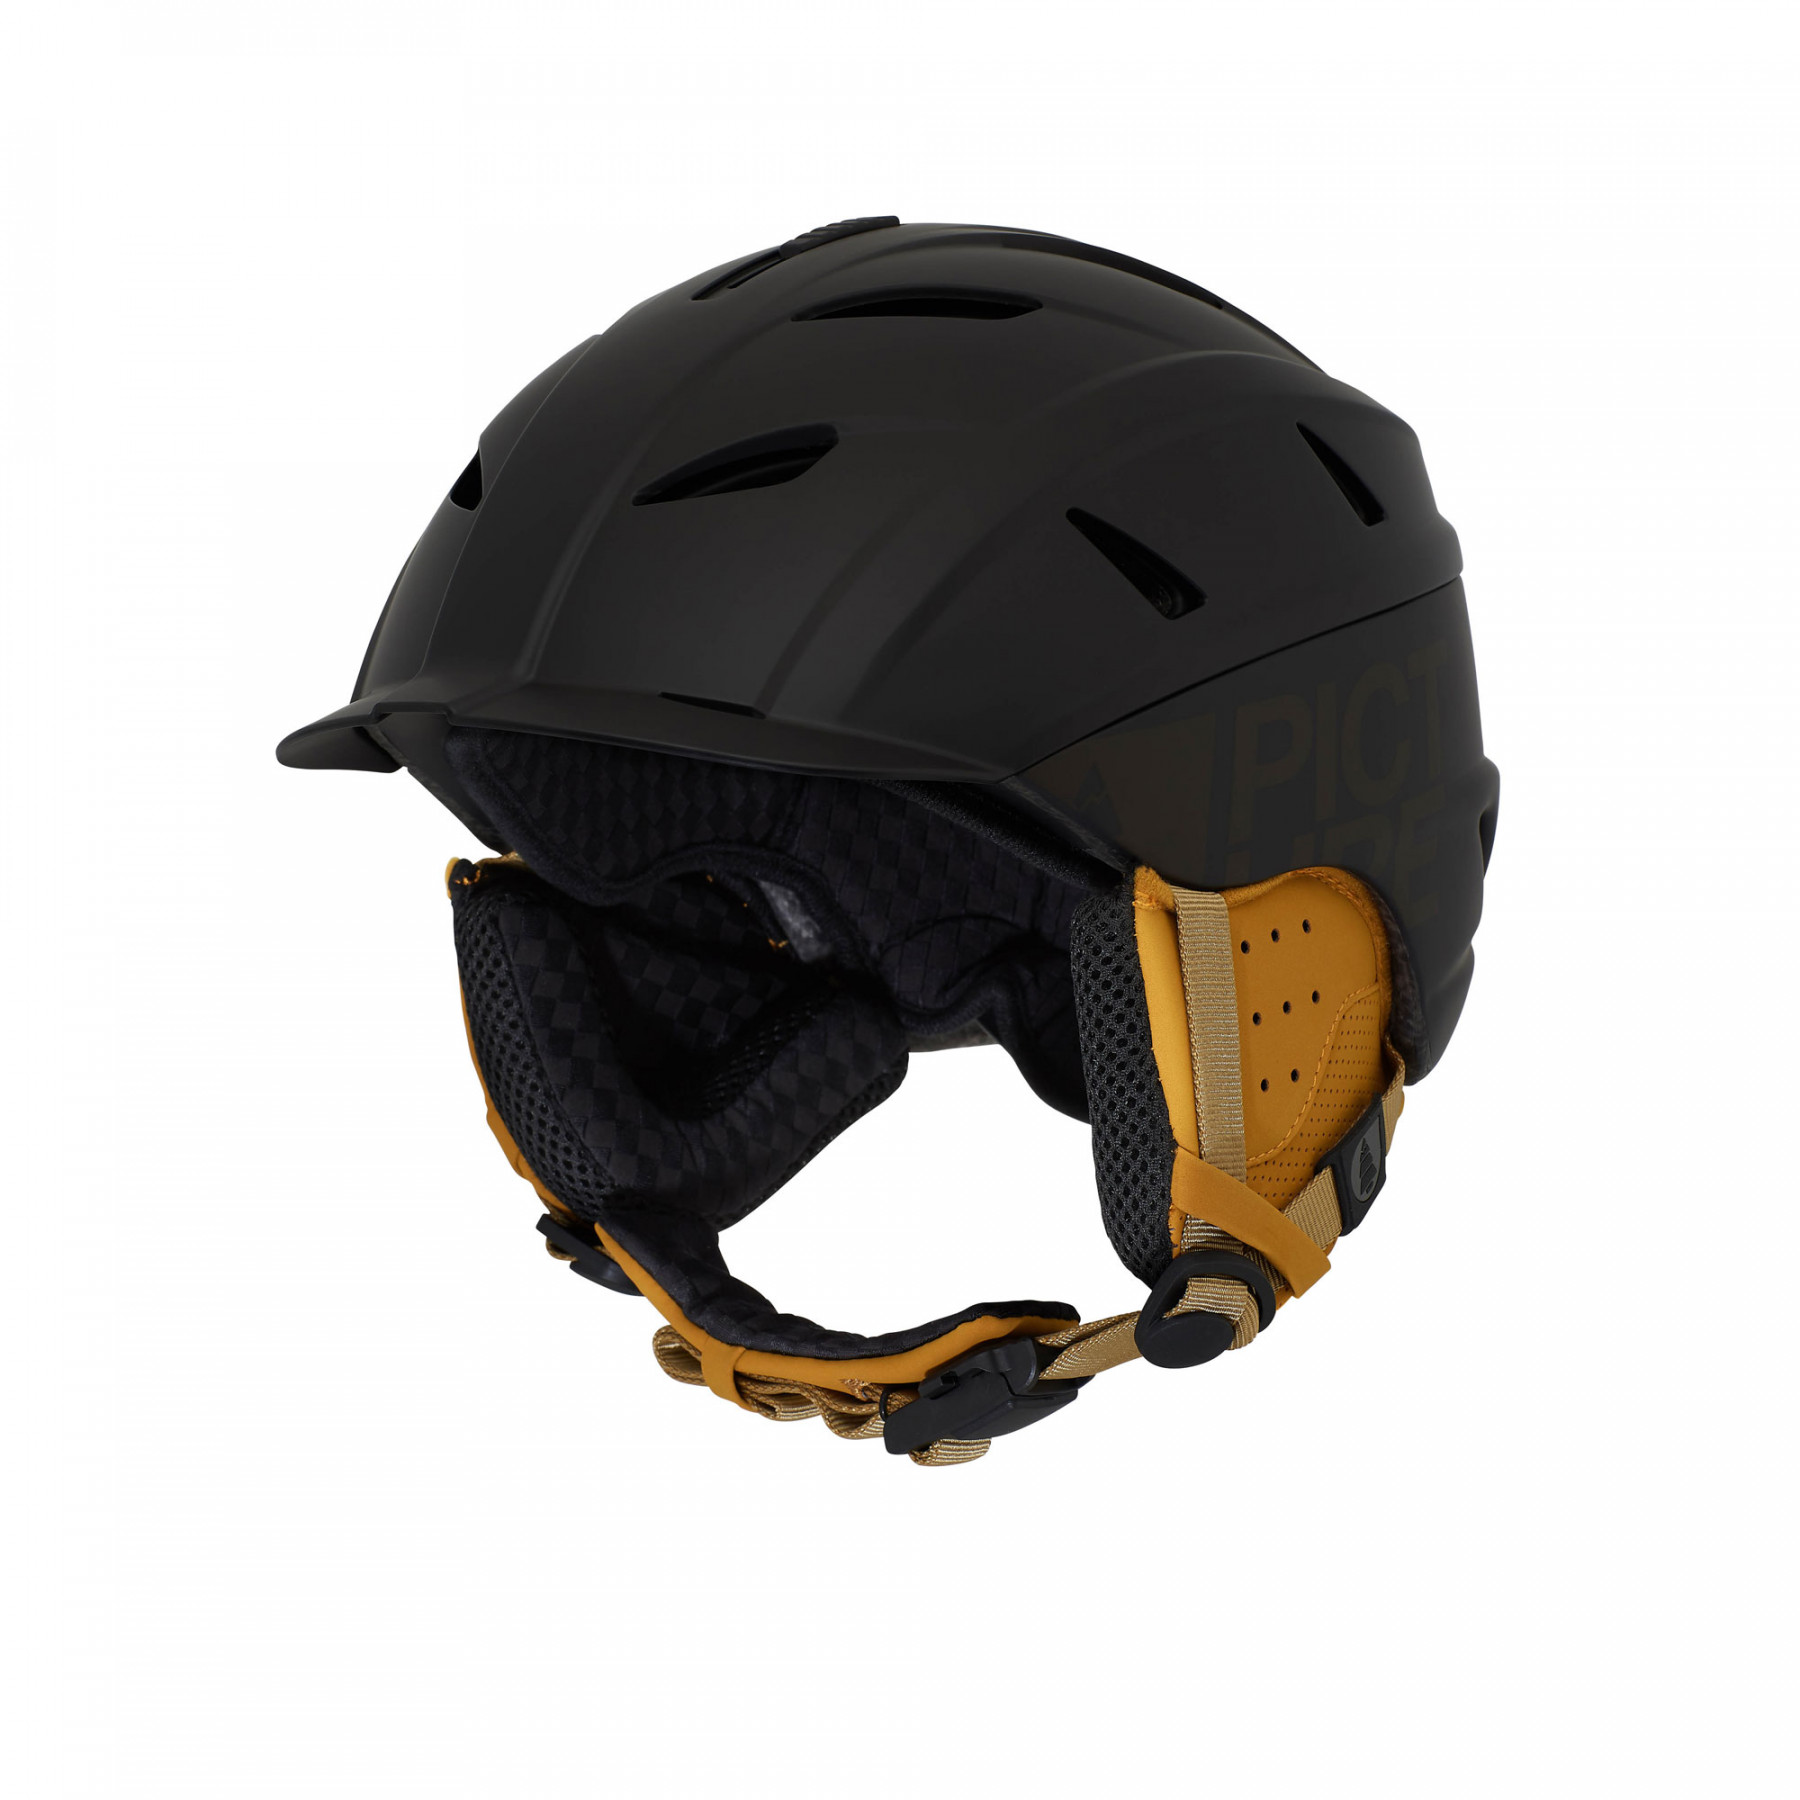 Casque de Ski Omega - Black 0